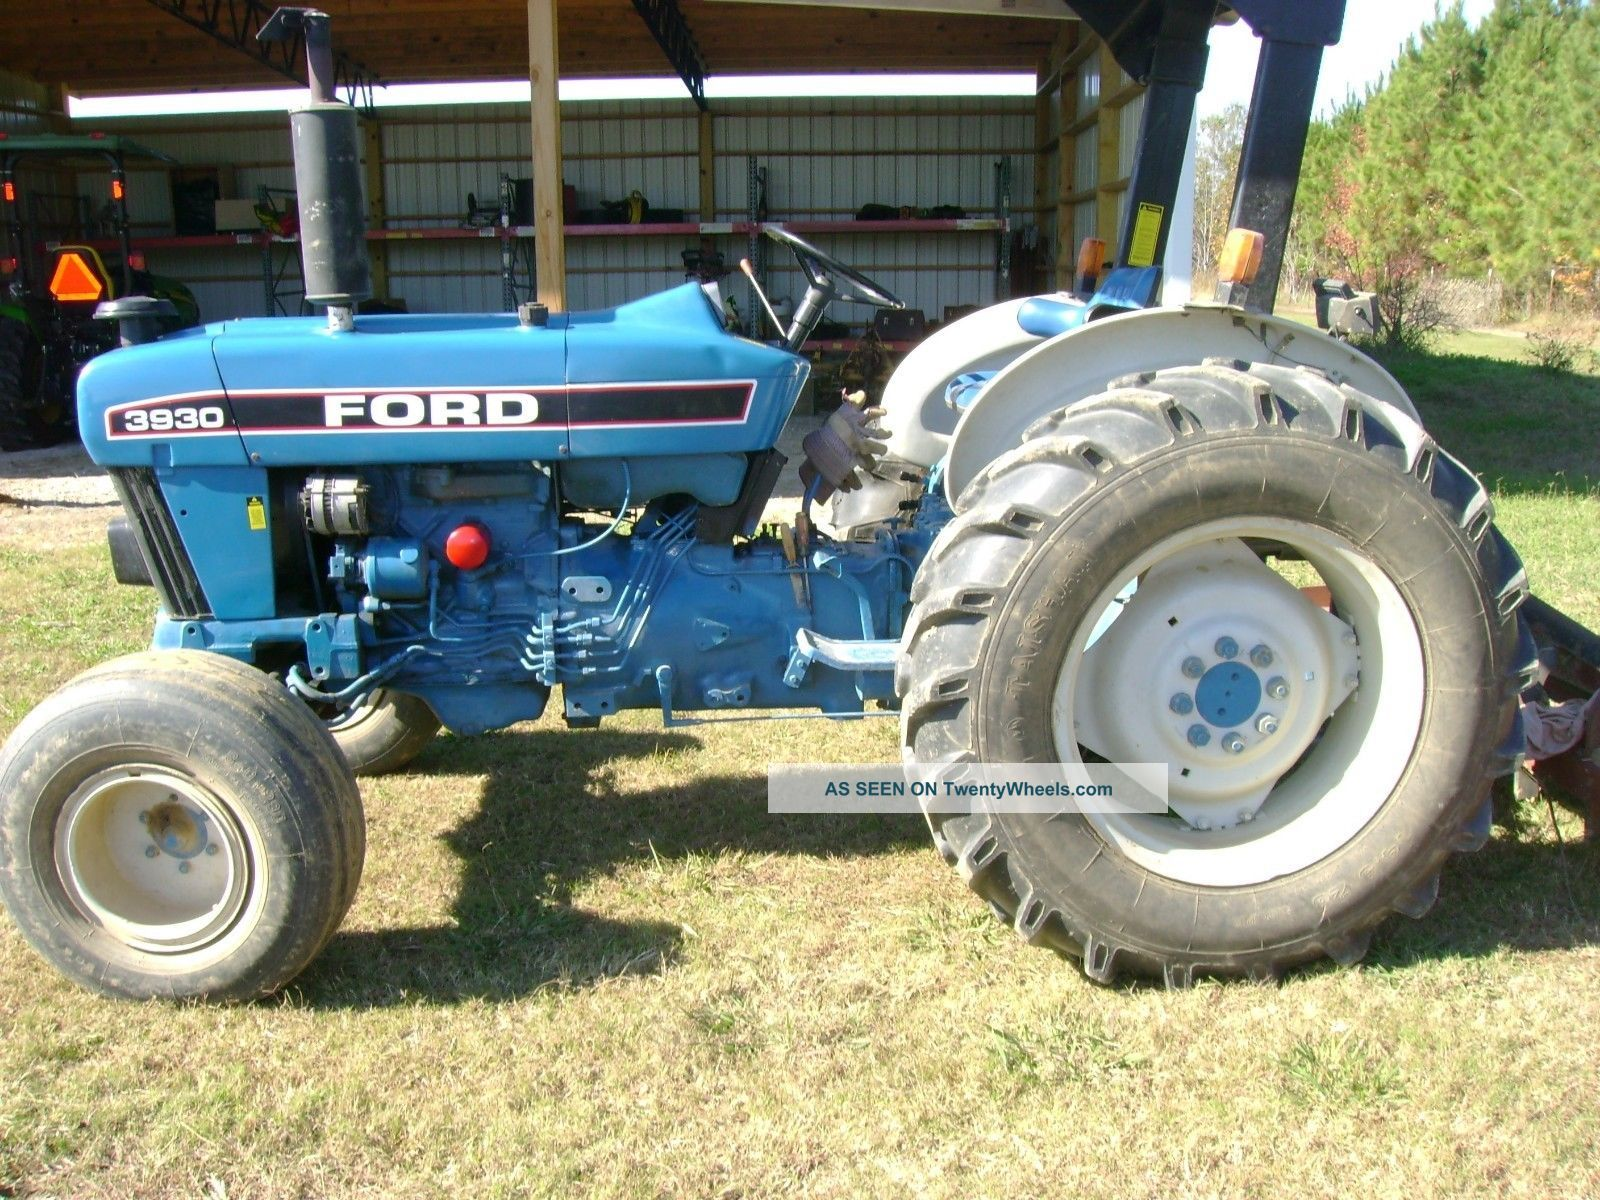 Ford Tractor Wheels : Ford tractor rims